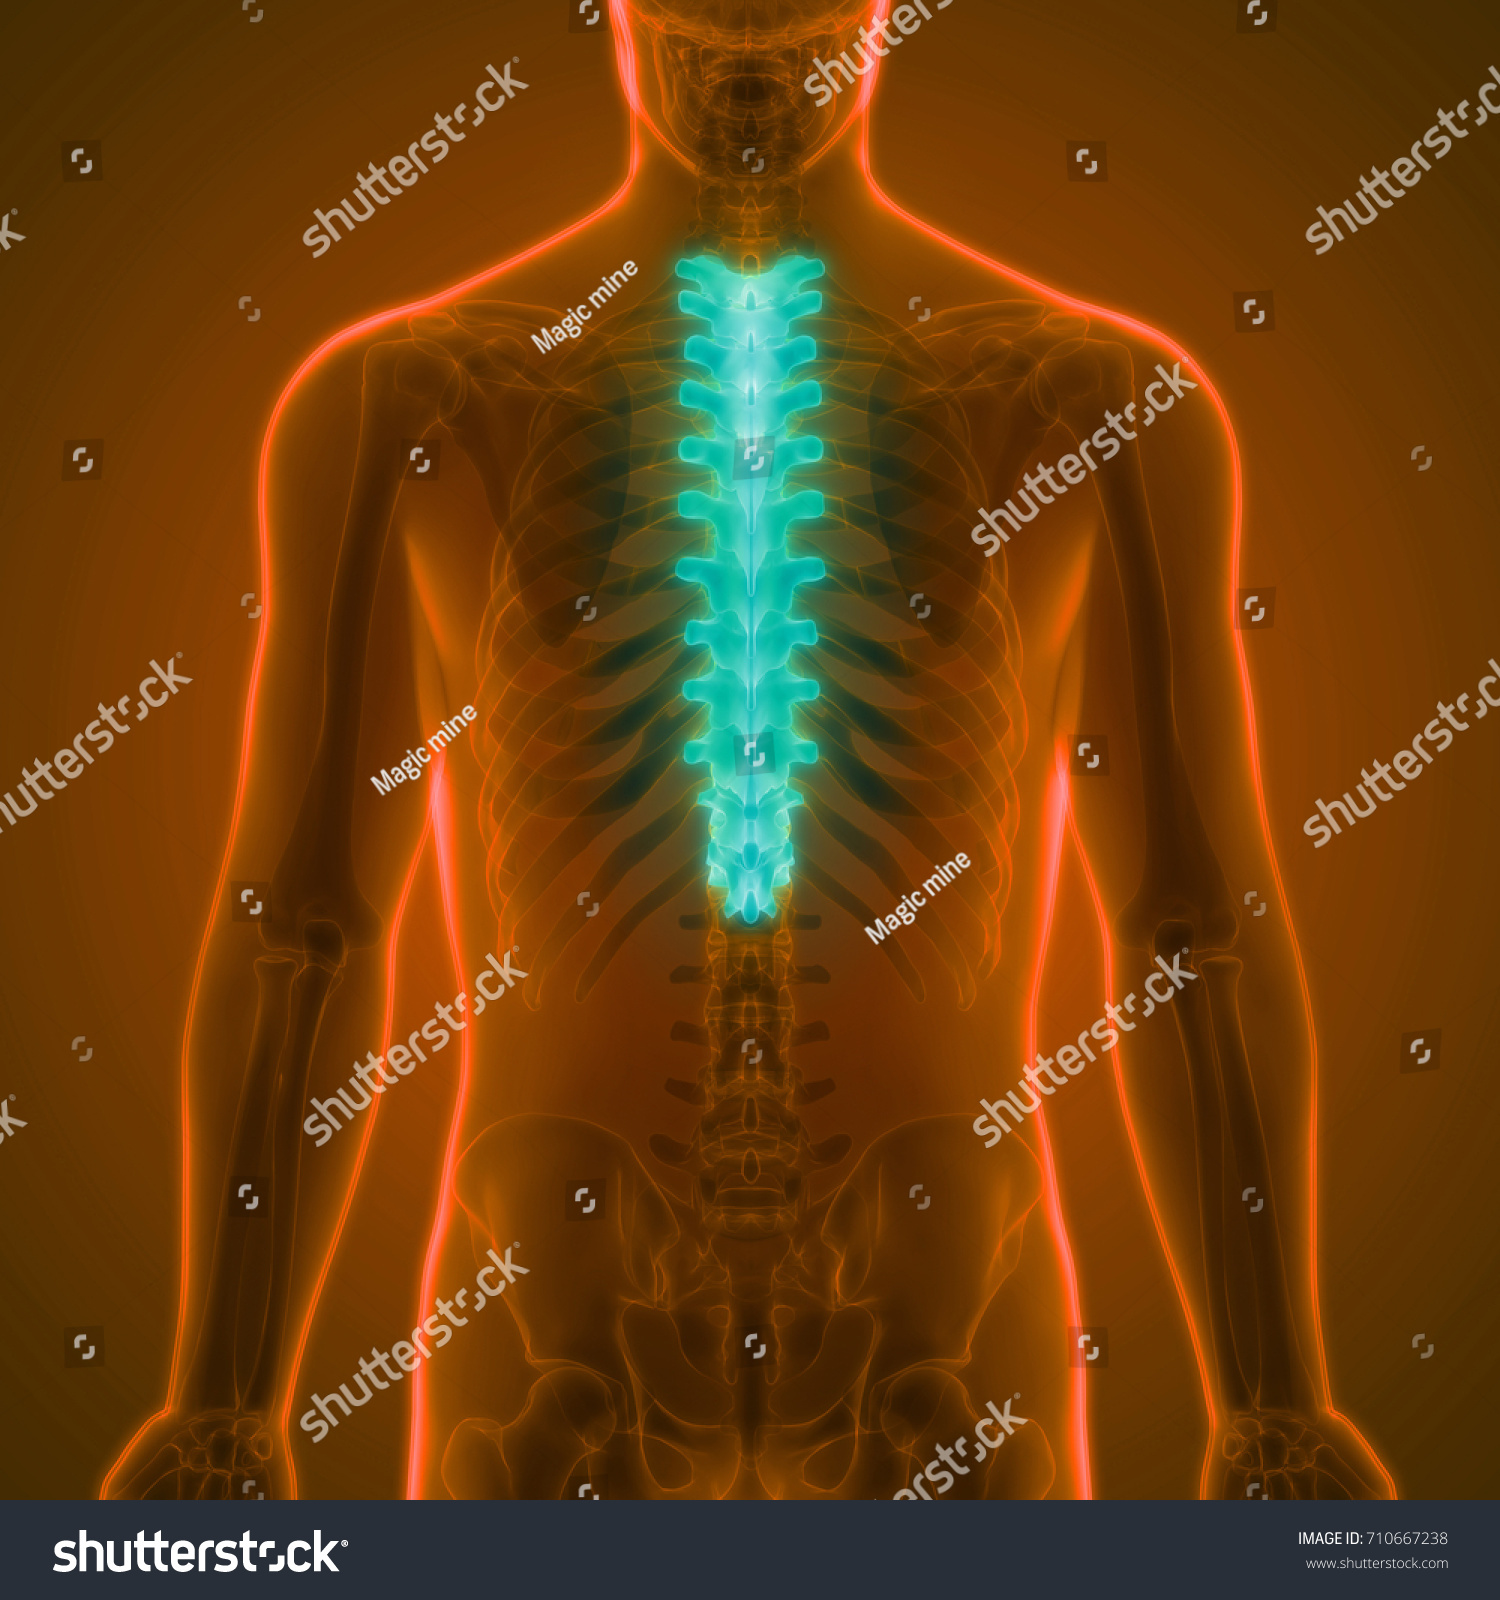 Royalty Free Stock Illustration Of Human Skeleton Vertebral Column